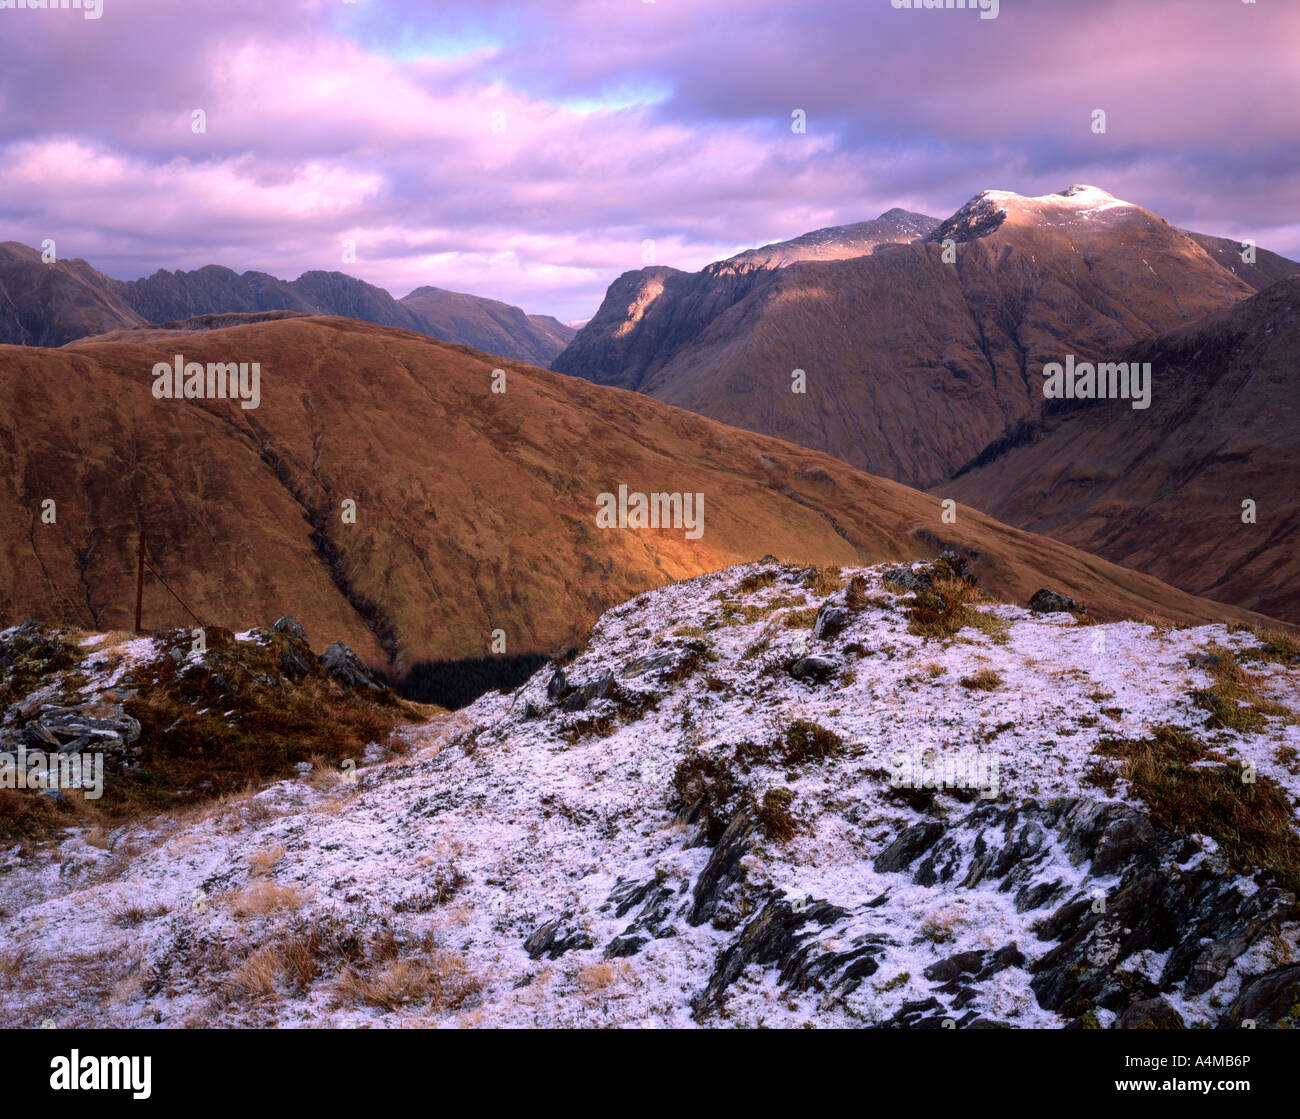 The mountains of Glencoe viewed from the summit of Sgorr a Choise Stock Photo